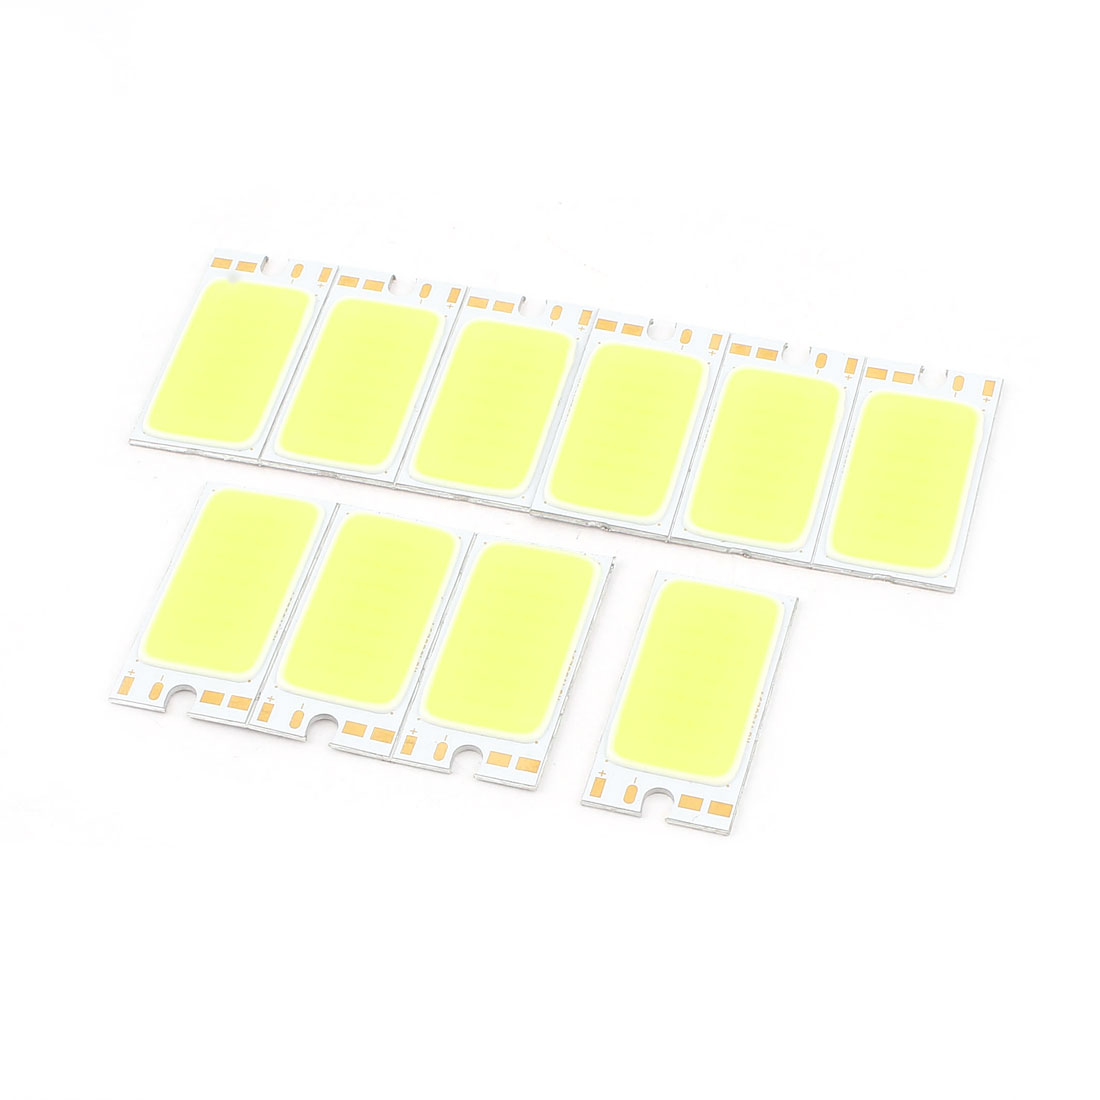 1.7W DC 9-11V 170mA 80-90LM/W White LED Light COB Lamp Bead Chip 10 Pcs